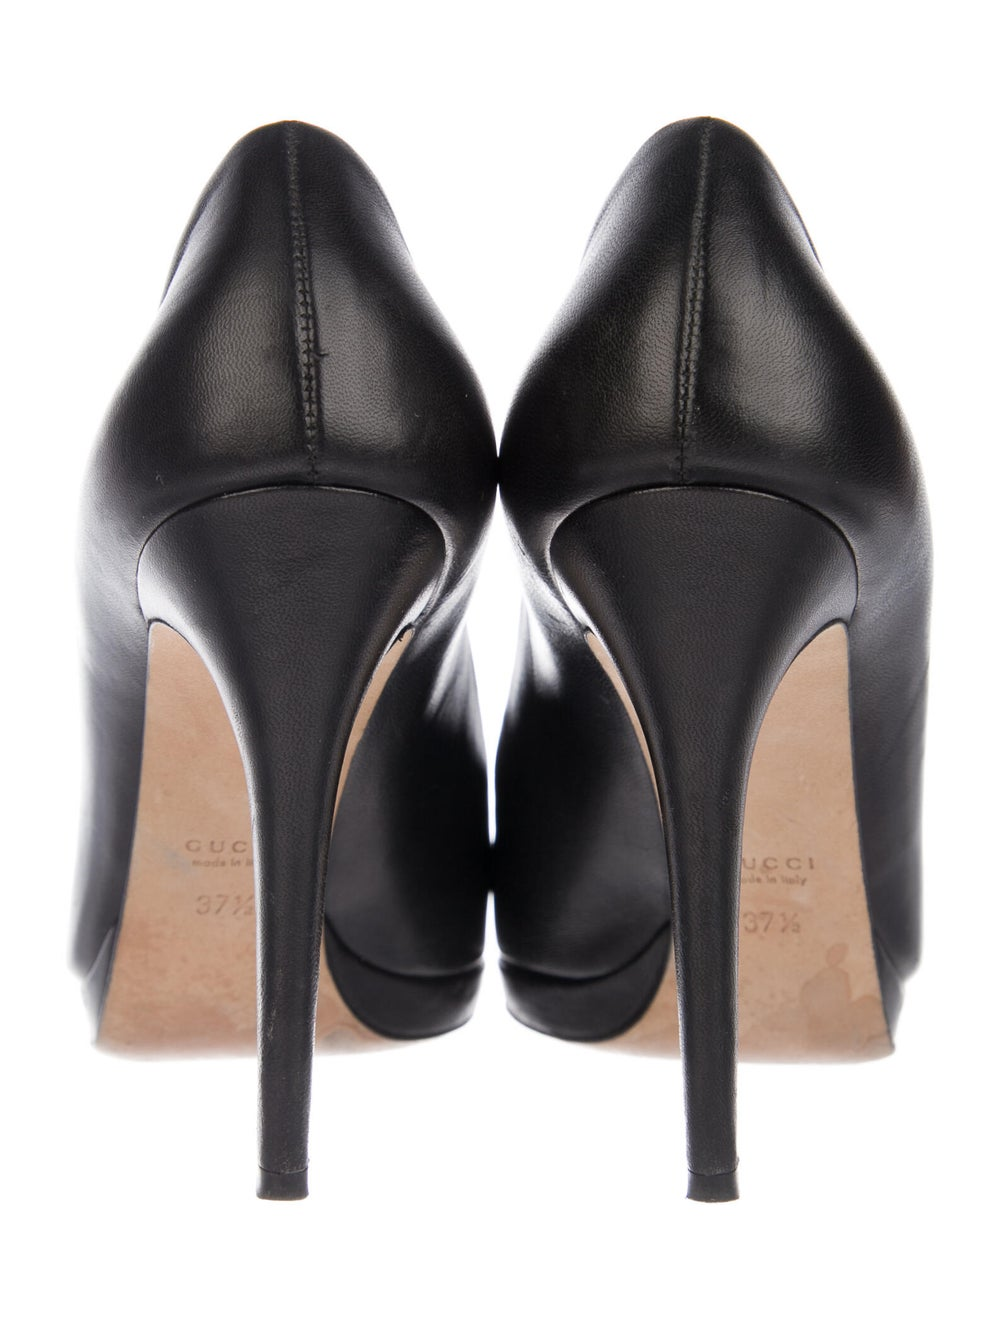 Gucci Horsebit Accent Leather Pumps Black - image 4